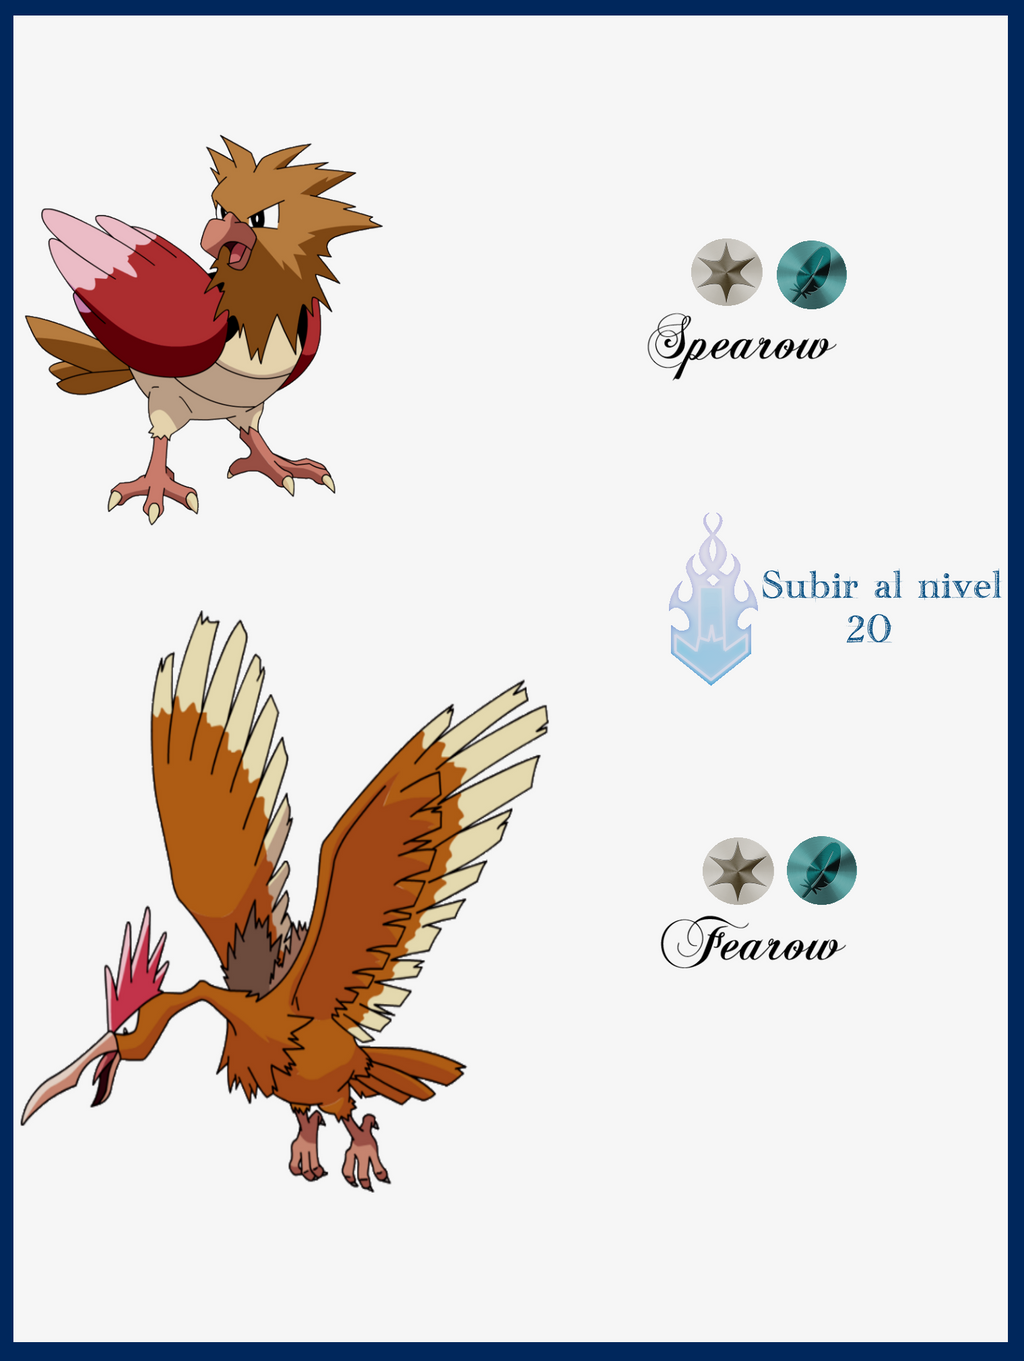 008 Spearow ... What Level Does Ekans Evolve In Silver